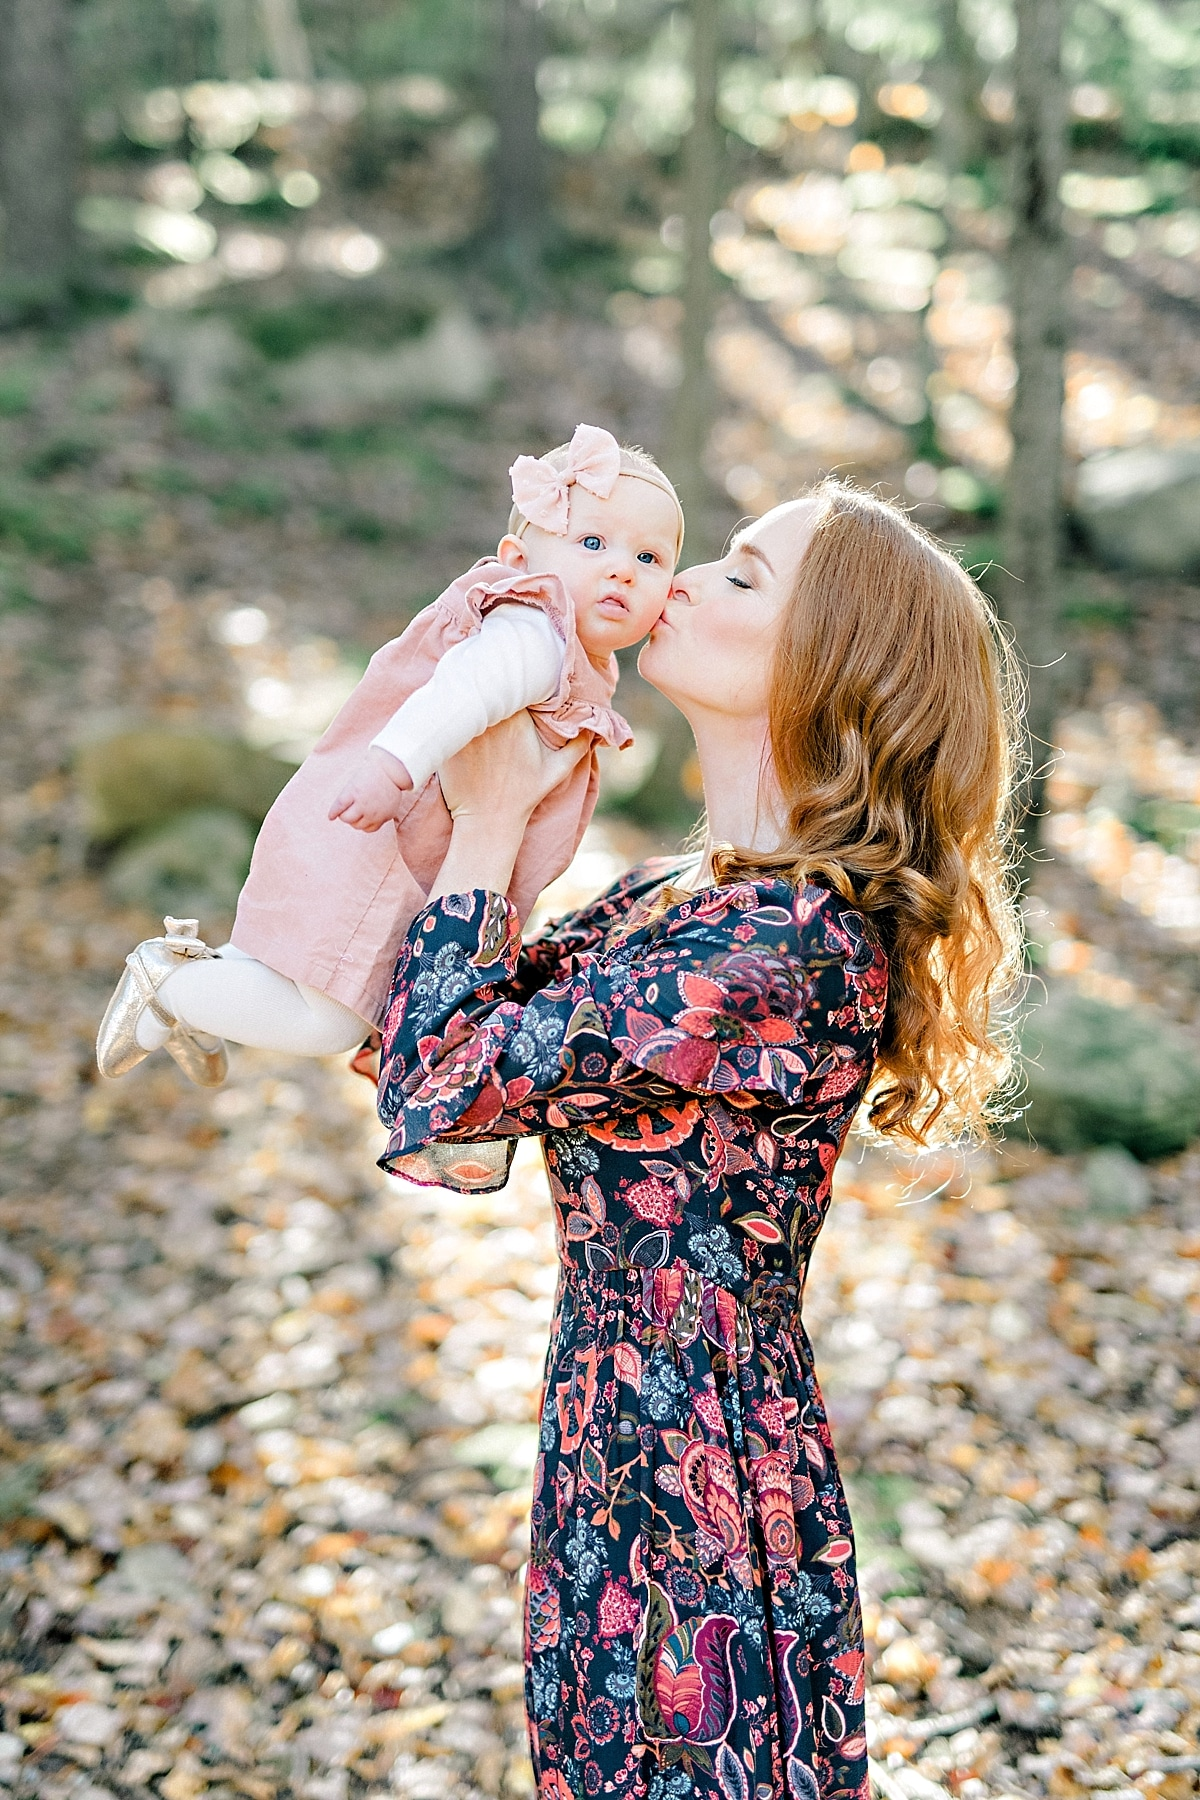 mother with beautiful long red hair lifts baby daughter up for a kiss in the autumn leaves